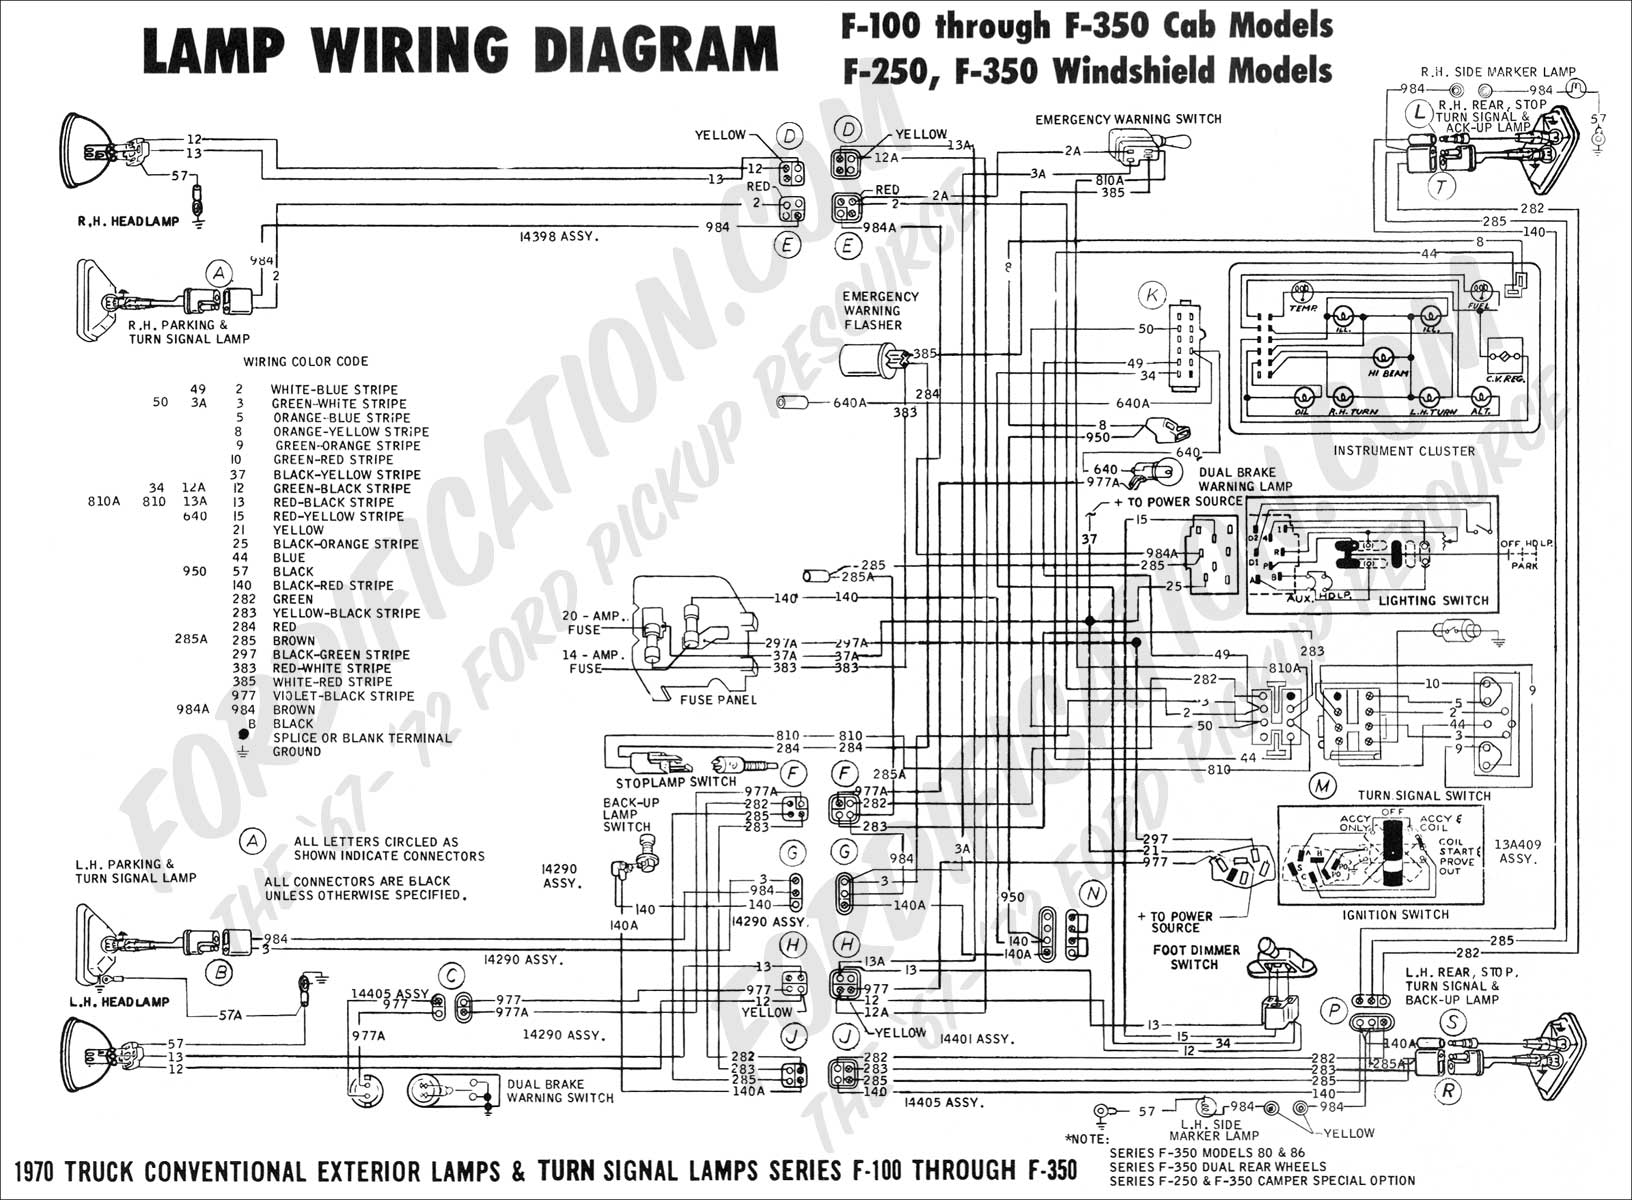 1994 f250 wiring diagram group electrical schemes  wiring diagram for 1994 ford diesel #10